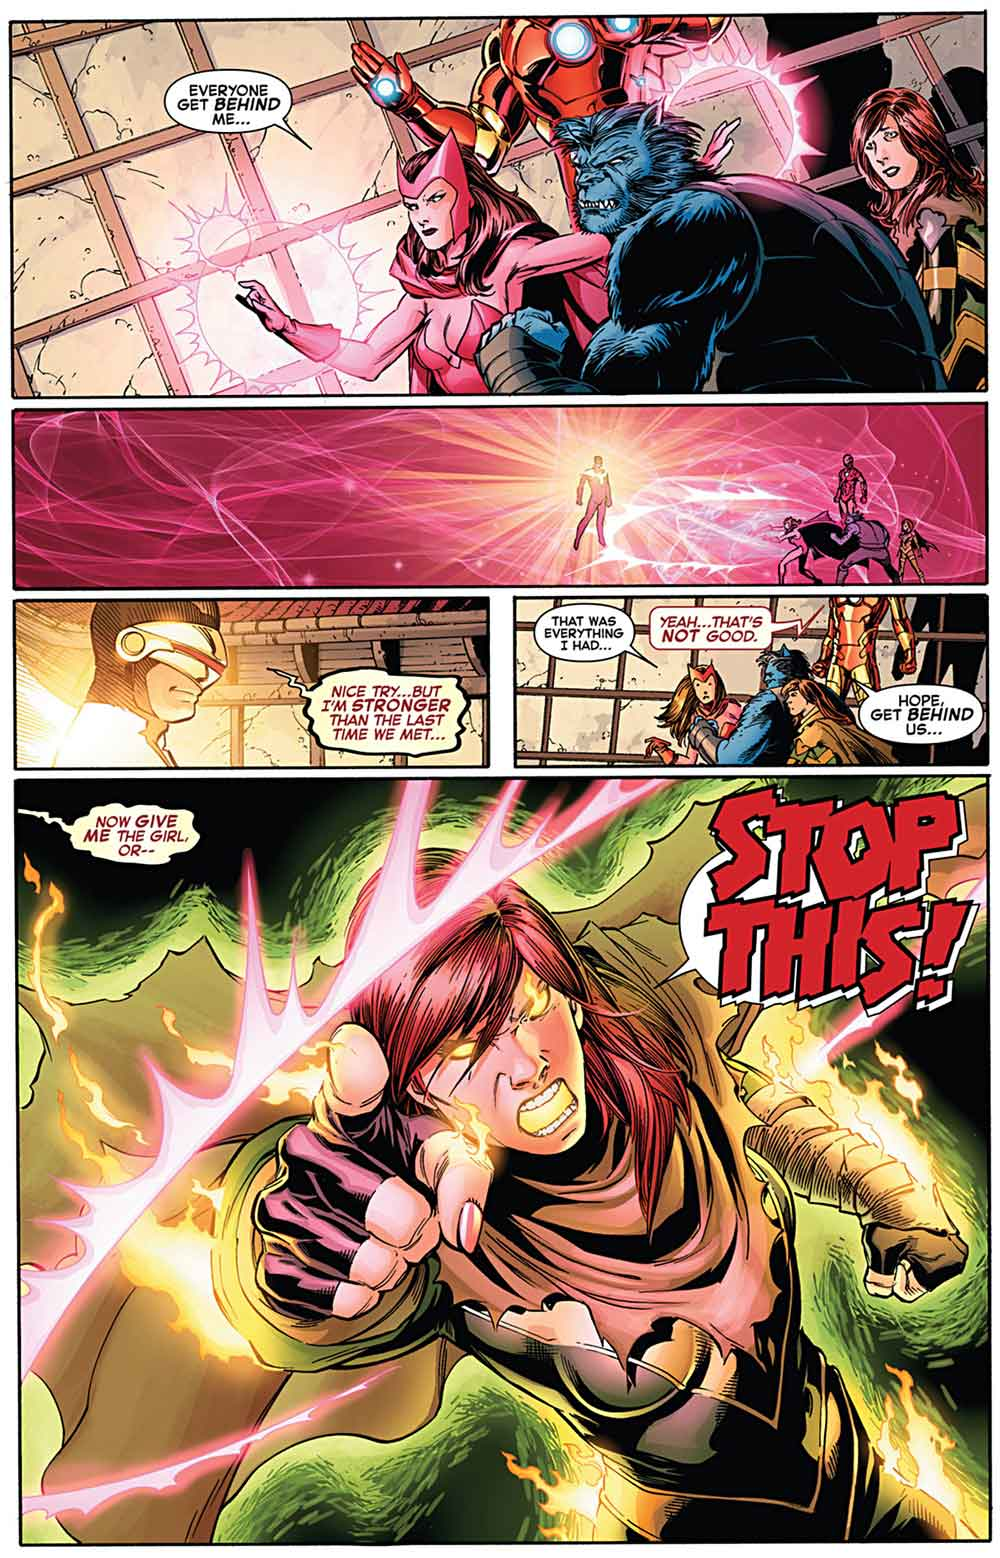 x-men: hope summers uses chaos fist-on phoenix five cyclops